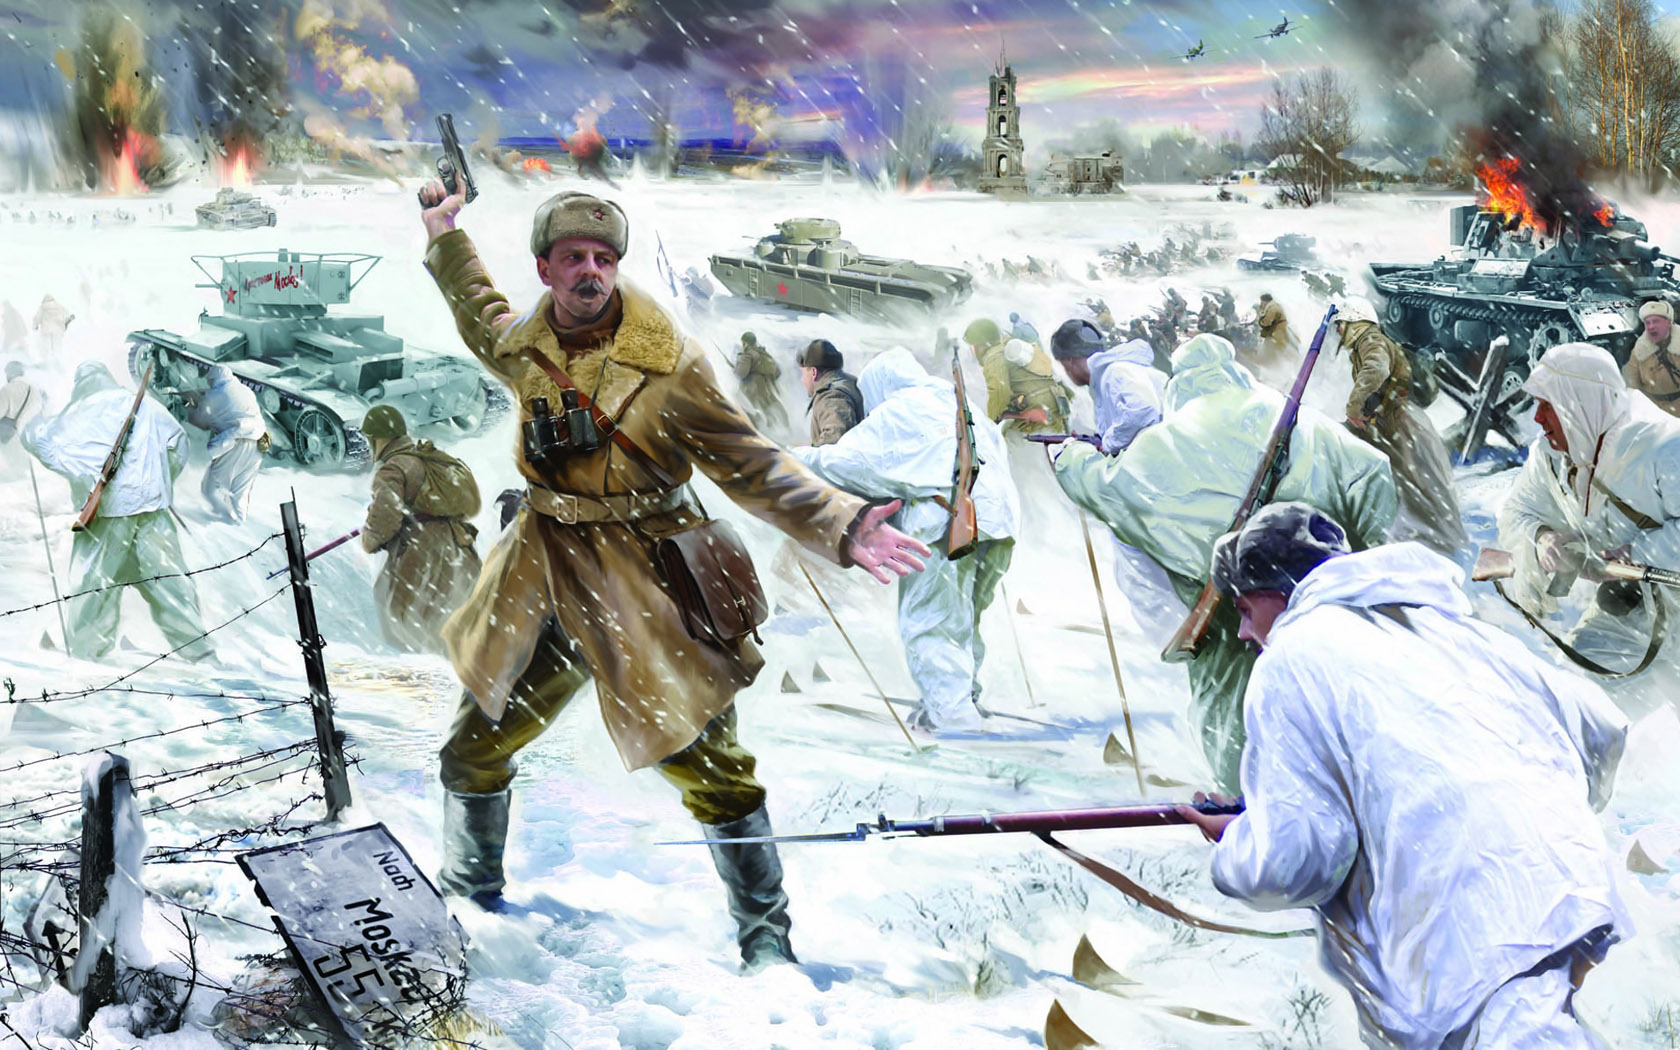 http://warwall.ru/Arts/4/Wallpaper_4002_Battle_For_Moscow.jpg